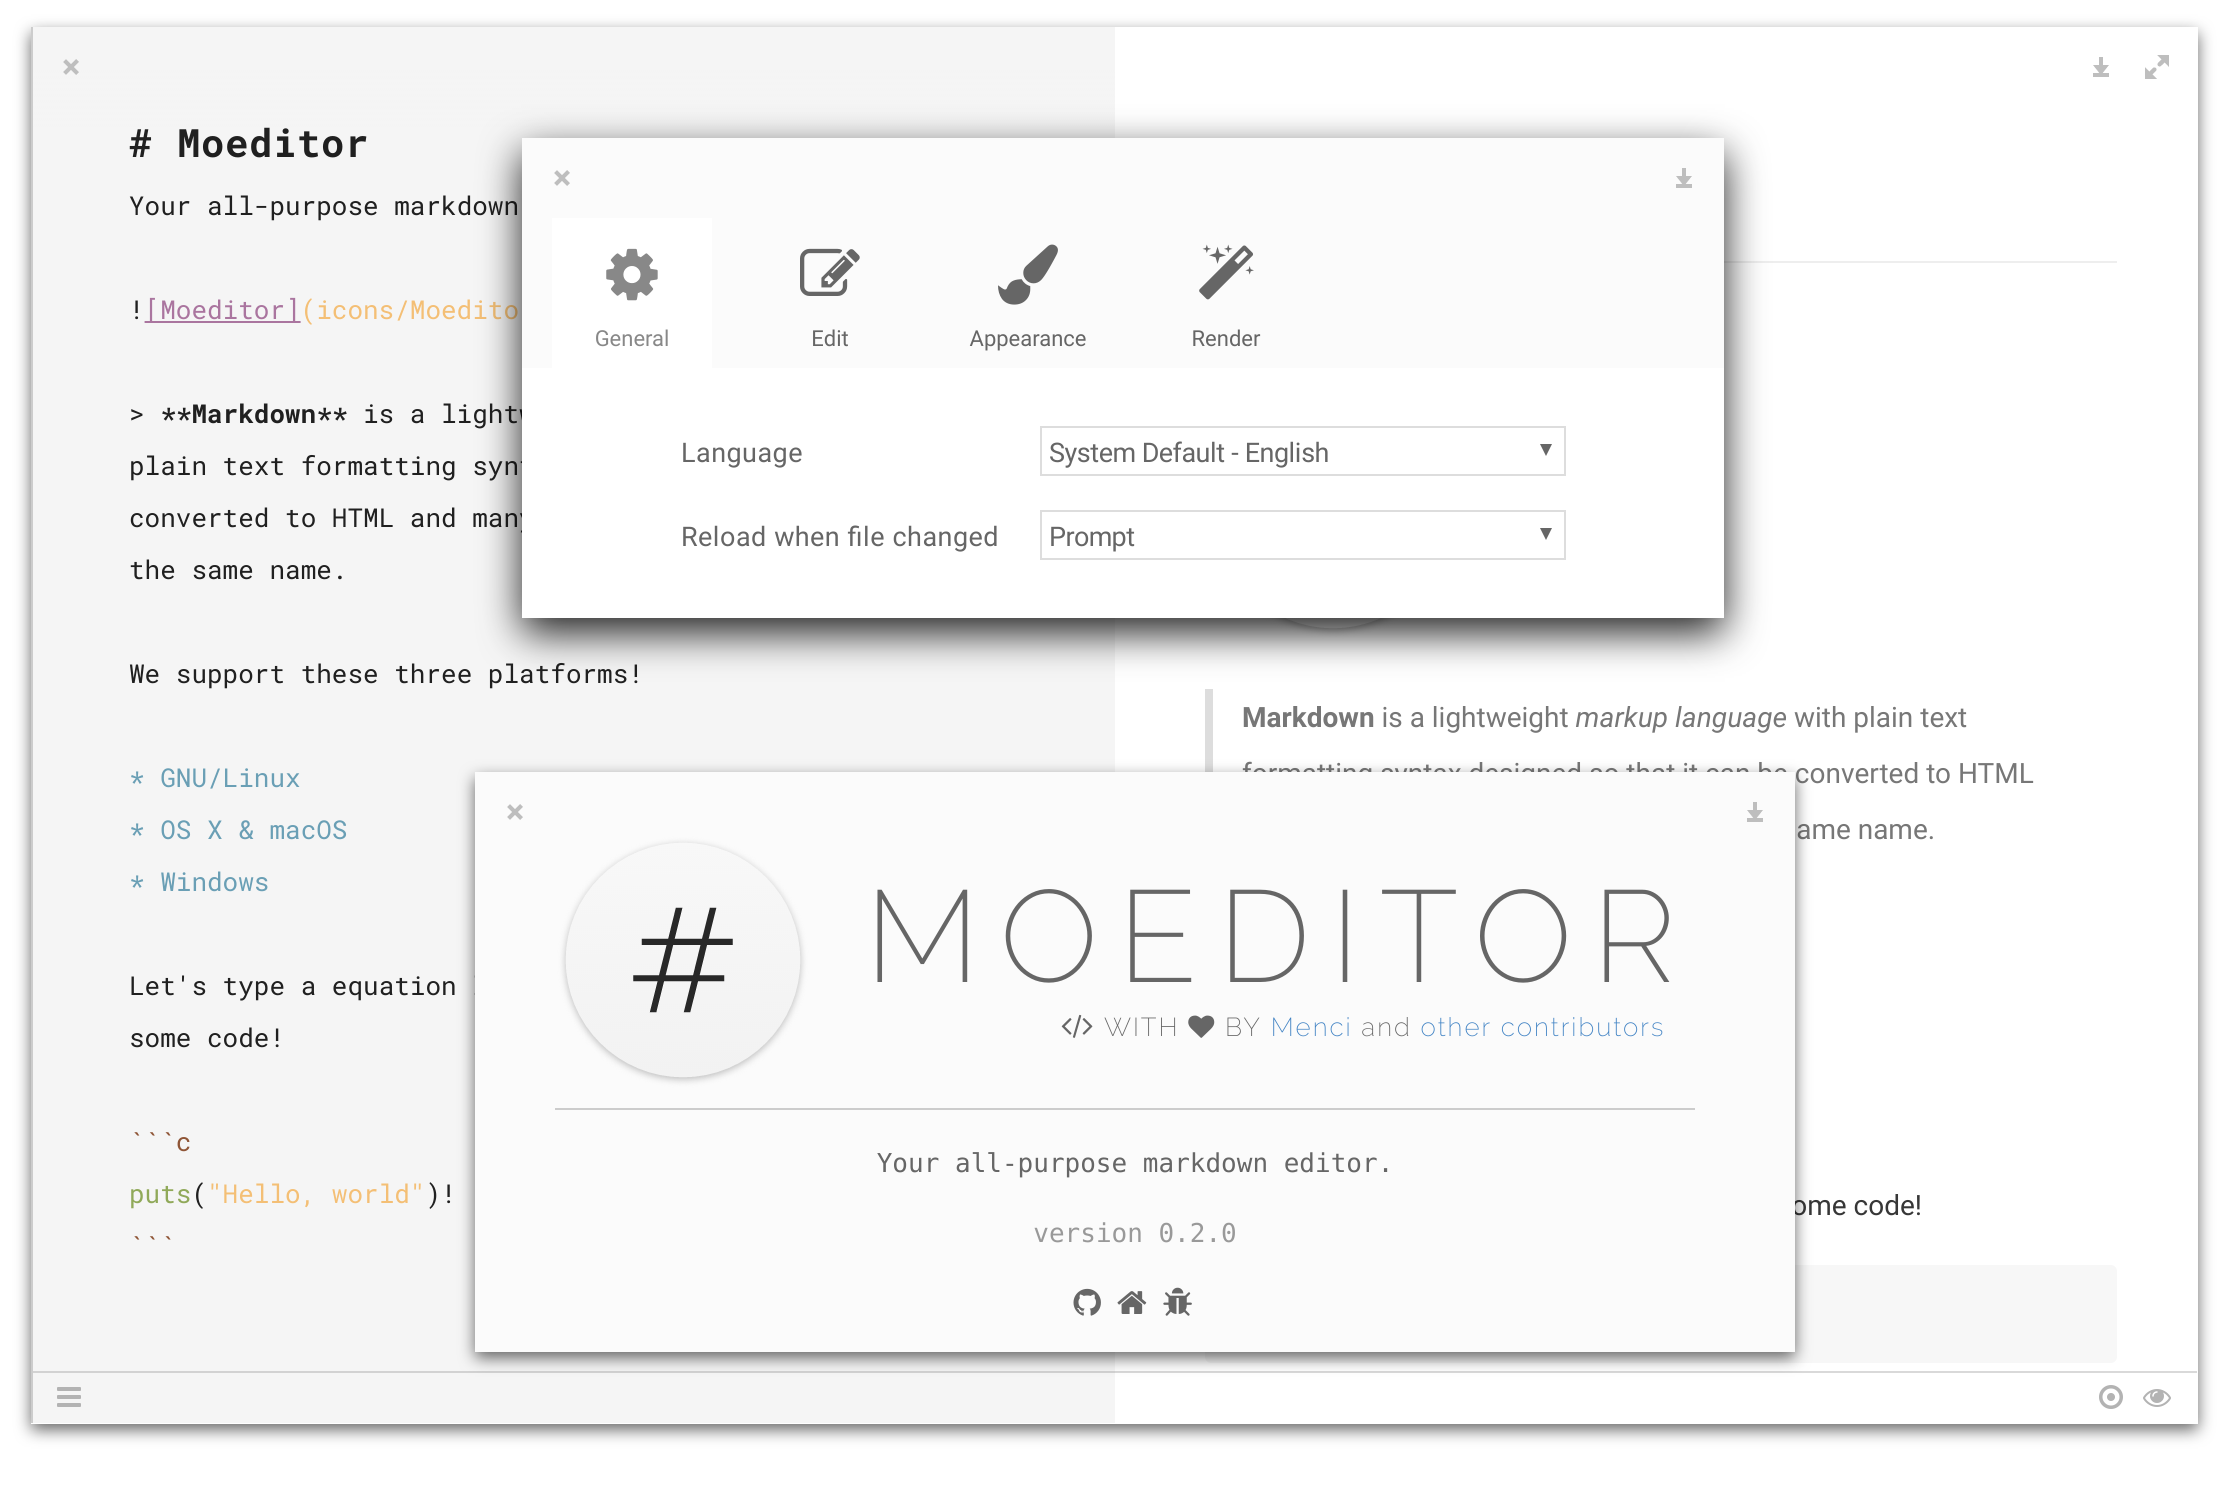 Moeditor About